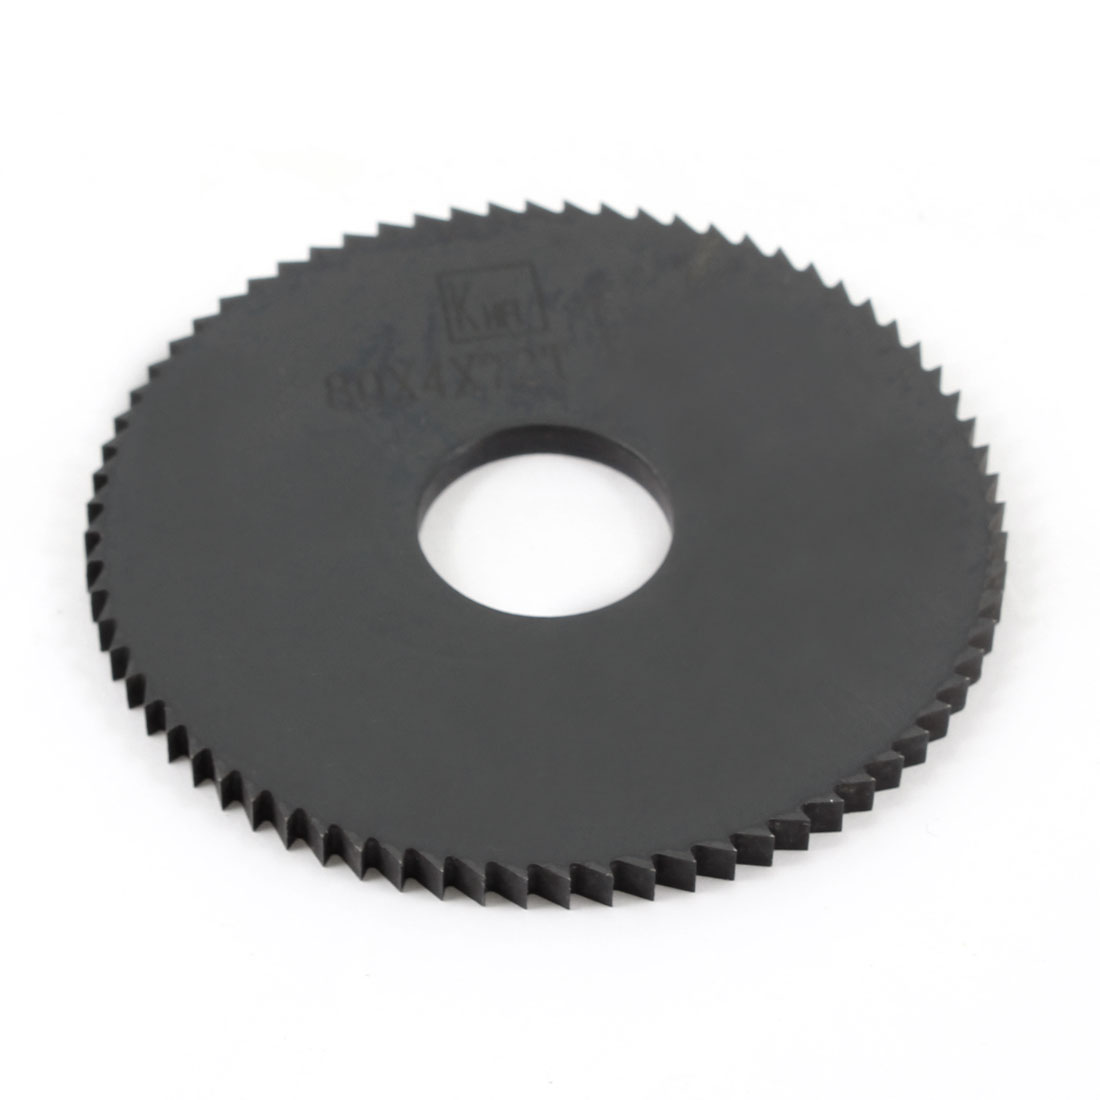 Hand Tool 80mm x 22mm x 4mm 72 Peg Teeth HSS Slitting Saw Blade